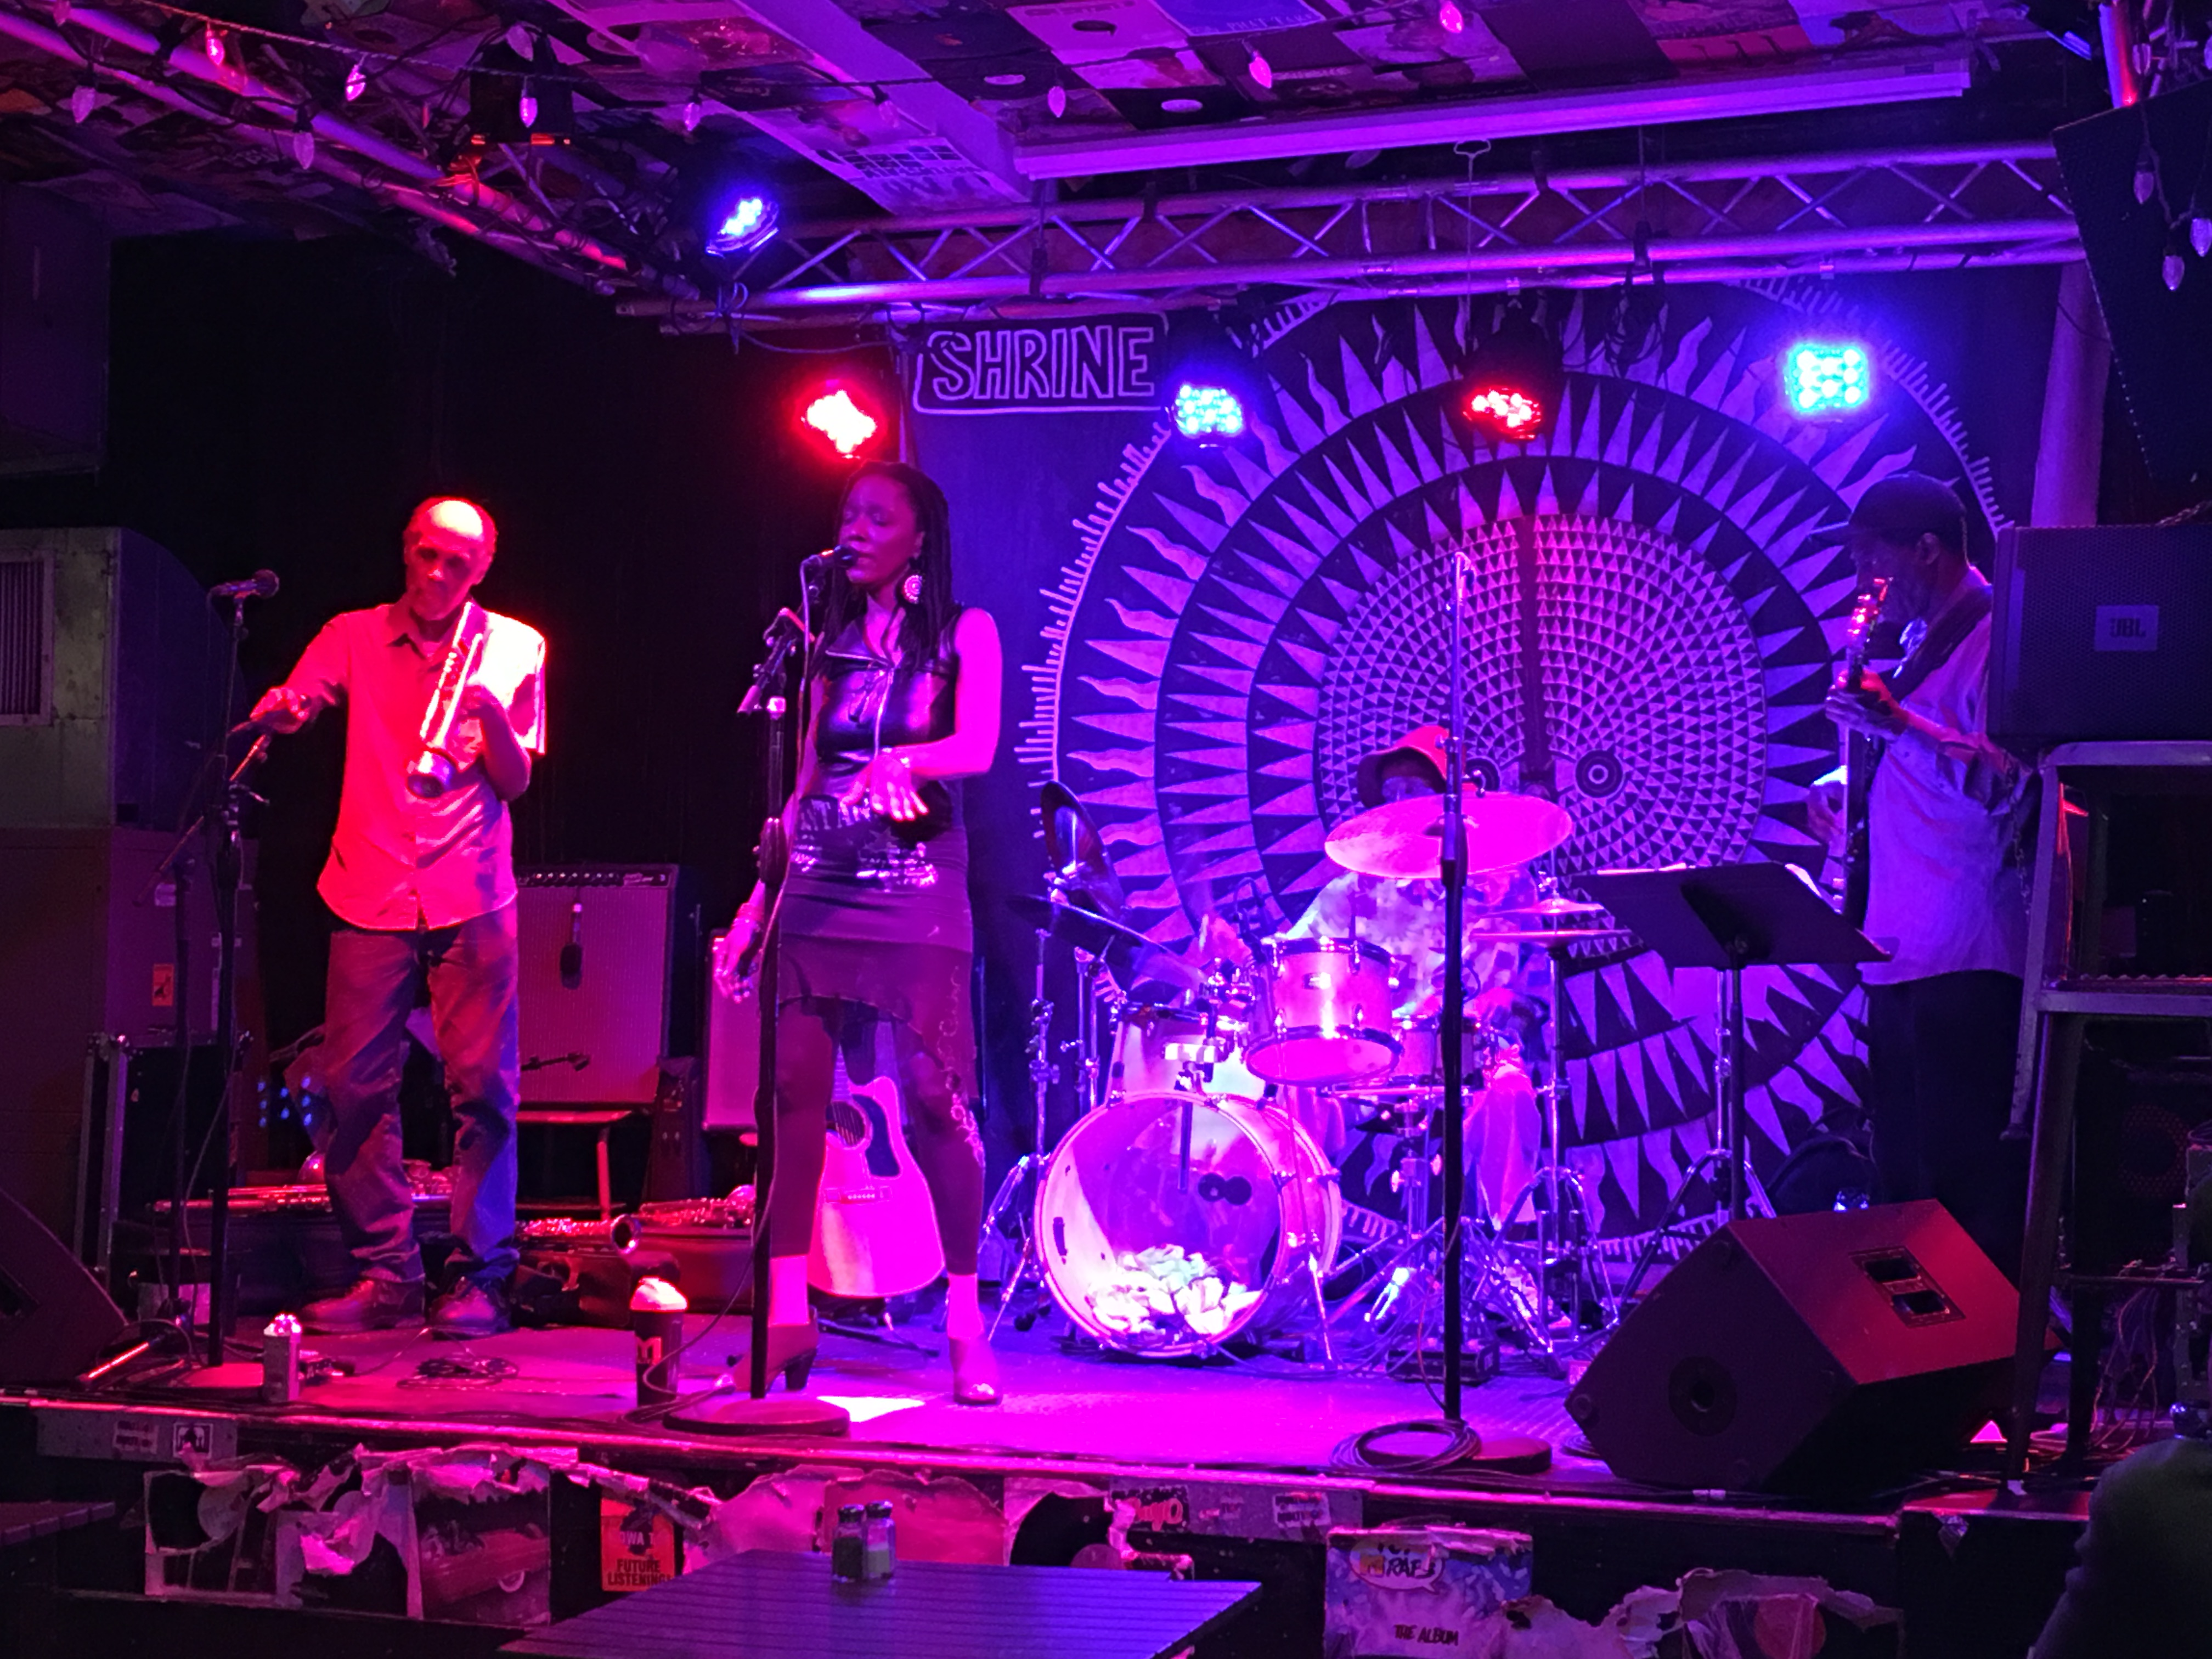 Concert Review: Human Hearts Trio + Special Guests at the Shrine, April 28